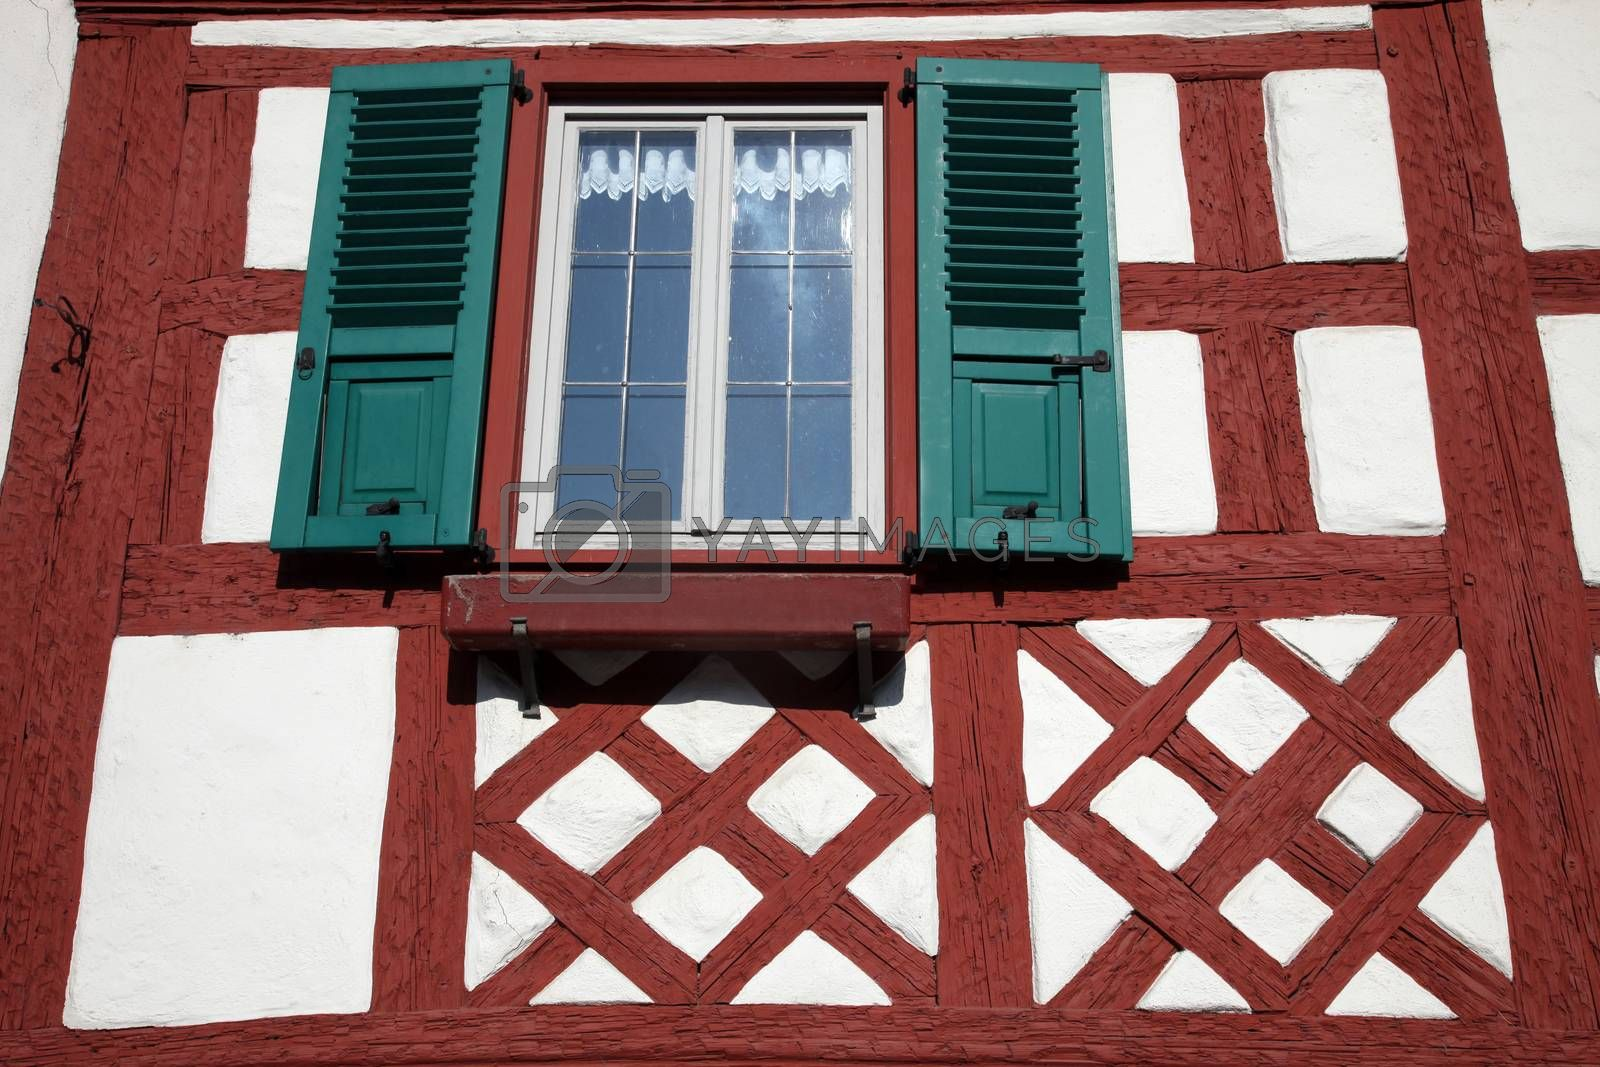 Traditional Half-Timbered Houses in Munsterschwarzach, Germany